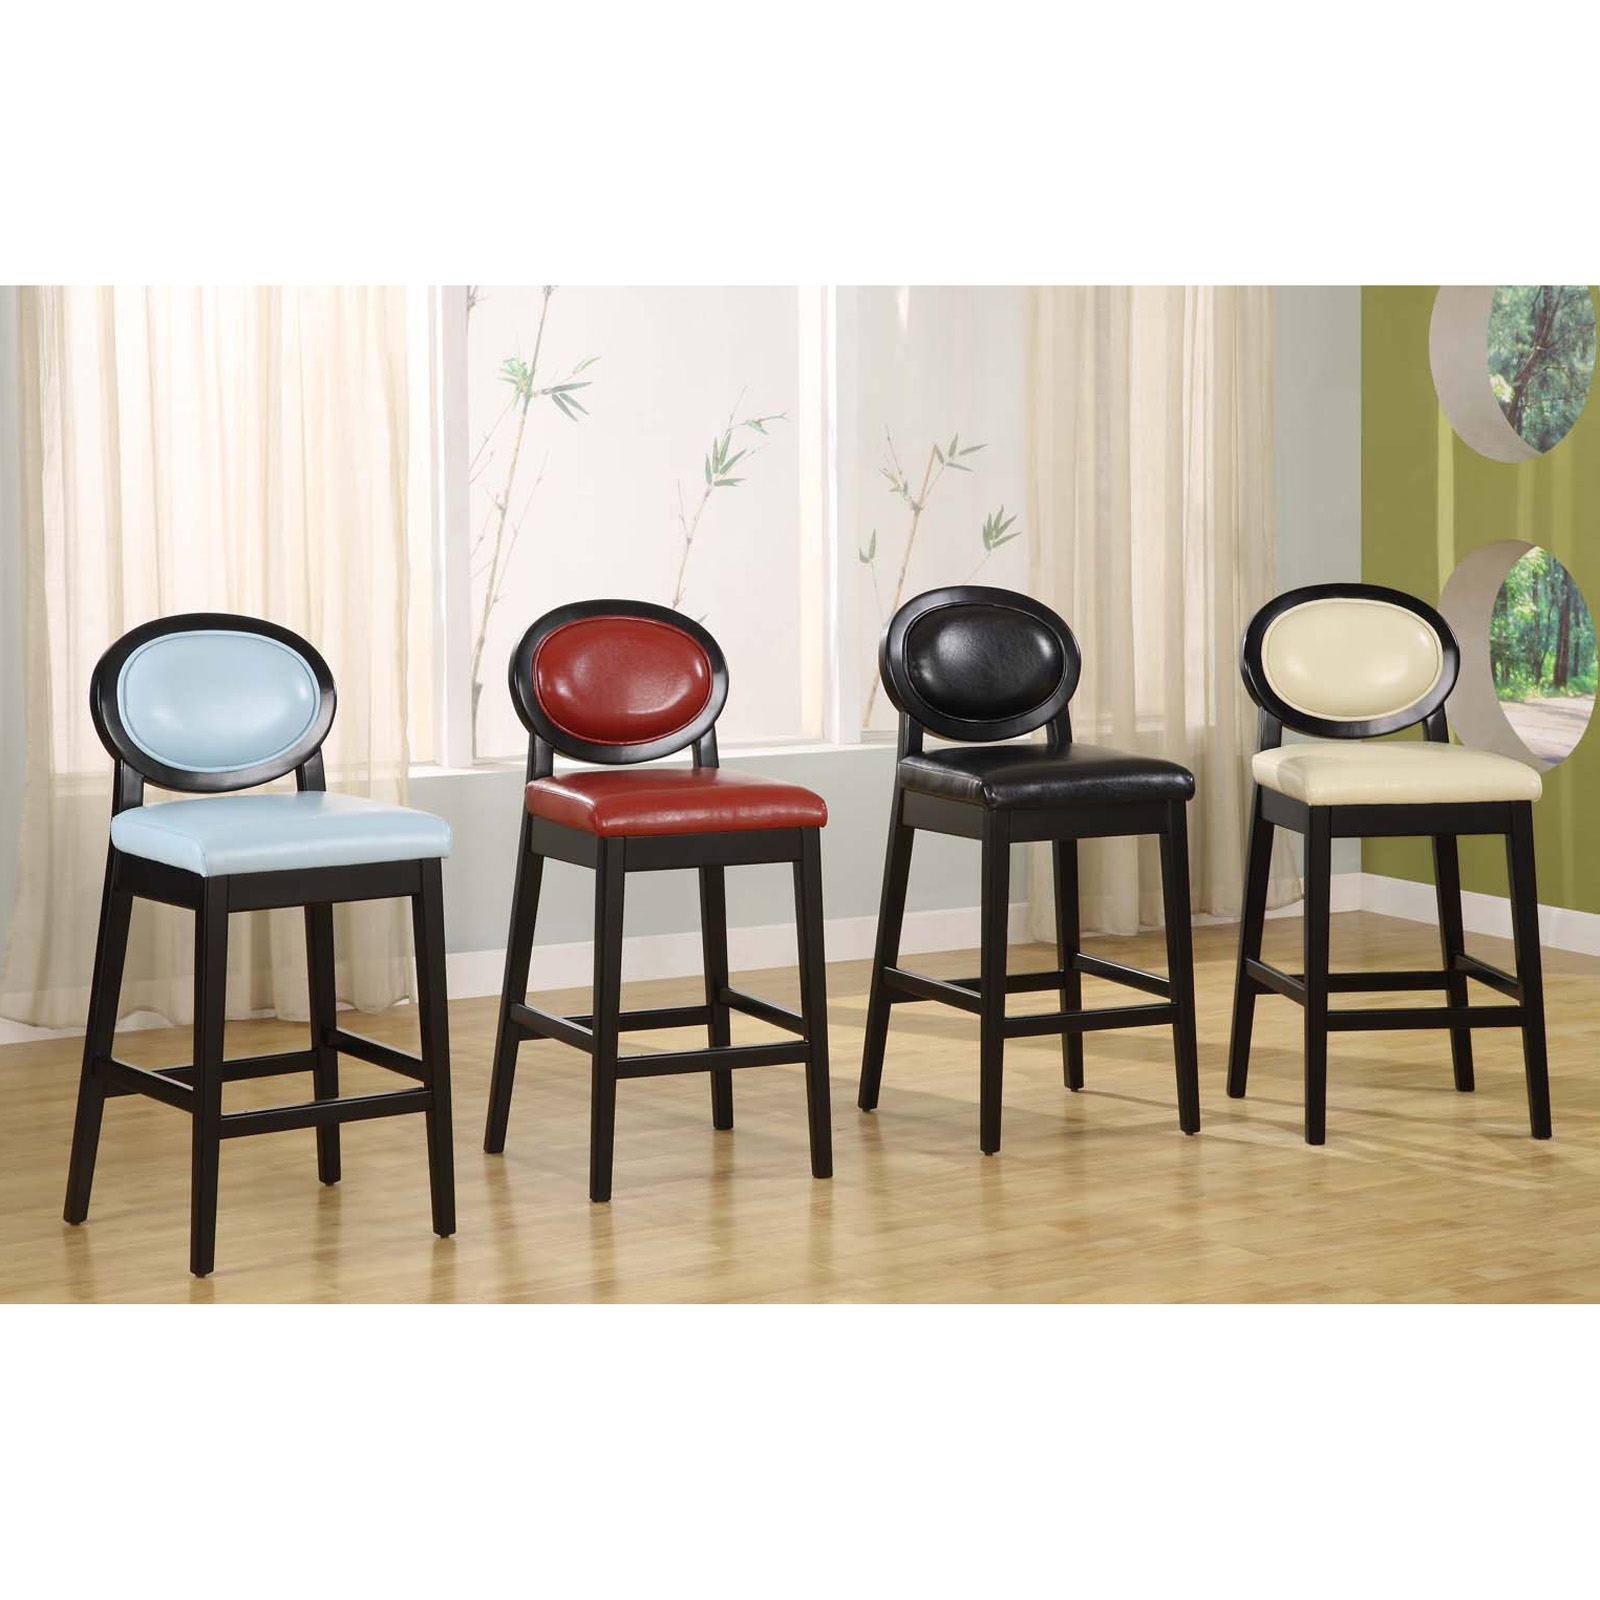 sc 1 st  Hayneedle & Armen Living Martini 26 in. Low Back Counter Stool | Hayneedle islam-shia.org